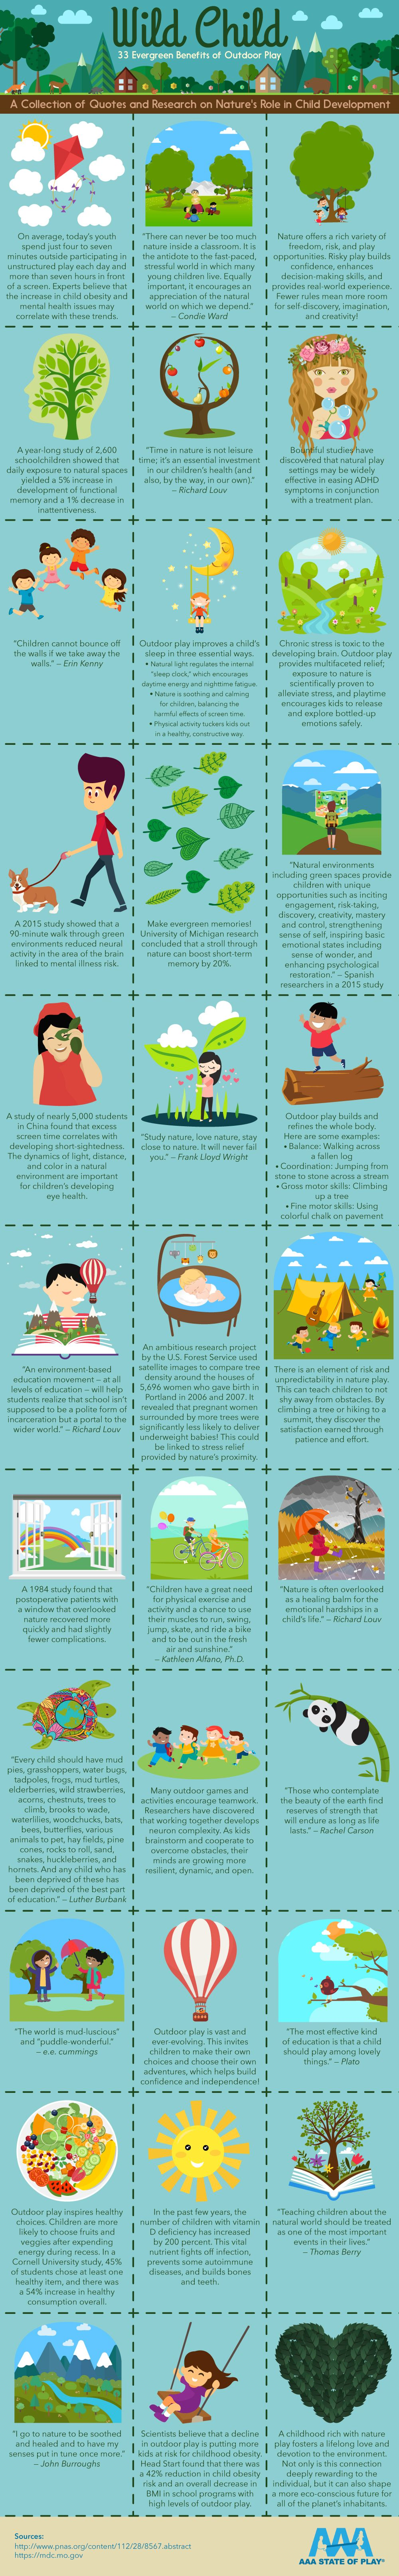 33 Benefits of Outdoor Play